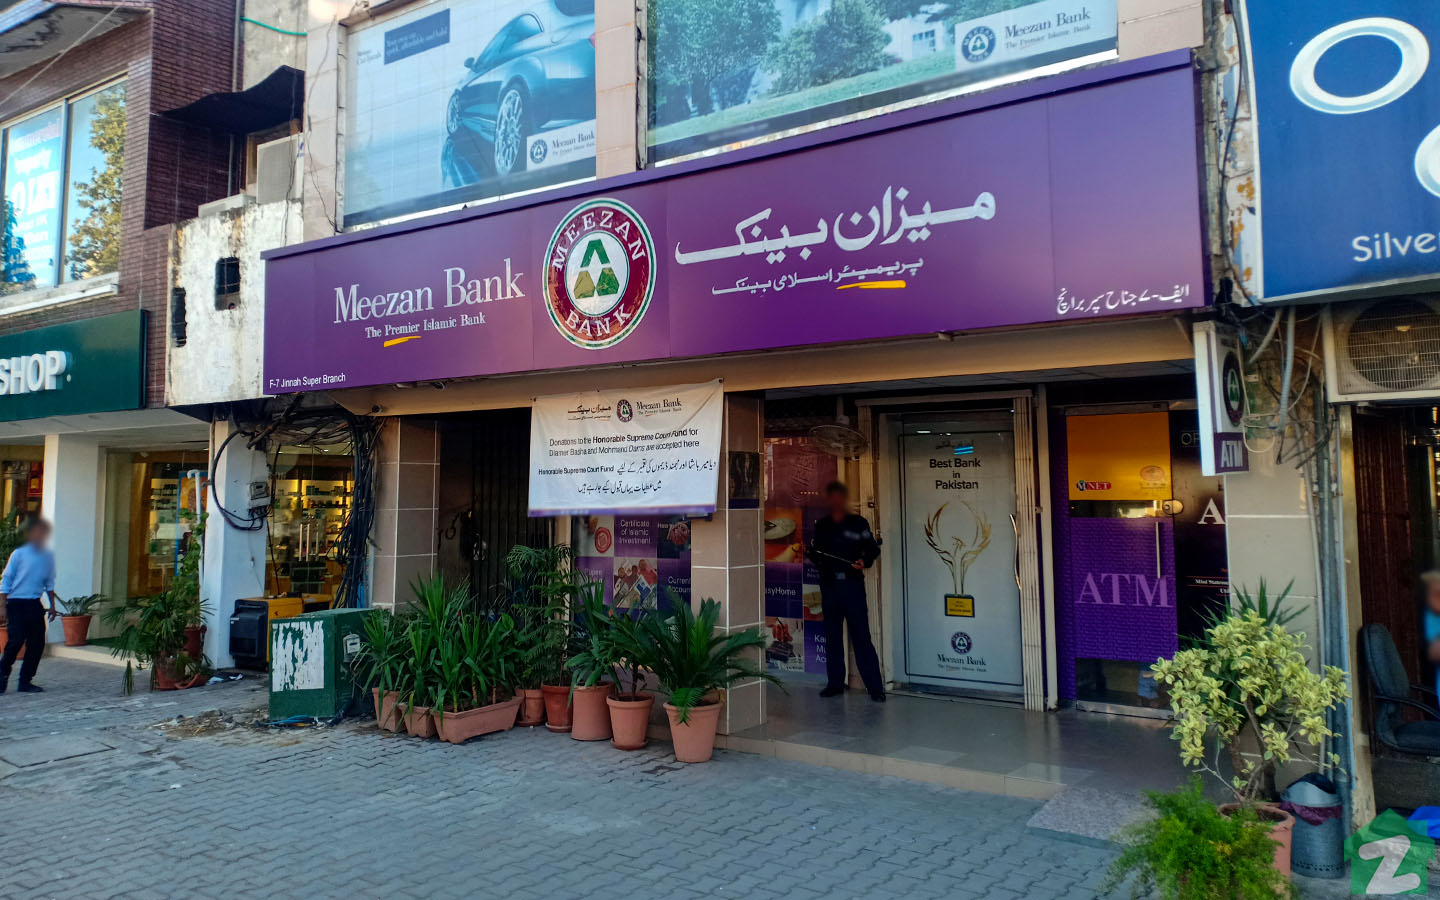 Meezan Bank is one of the many banks in F-7.